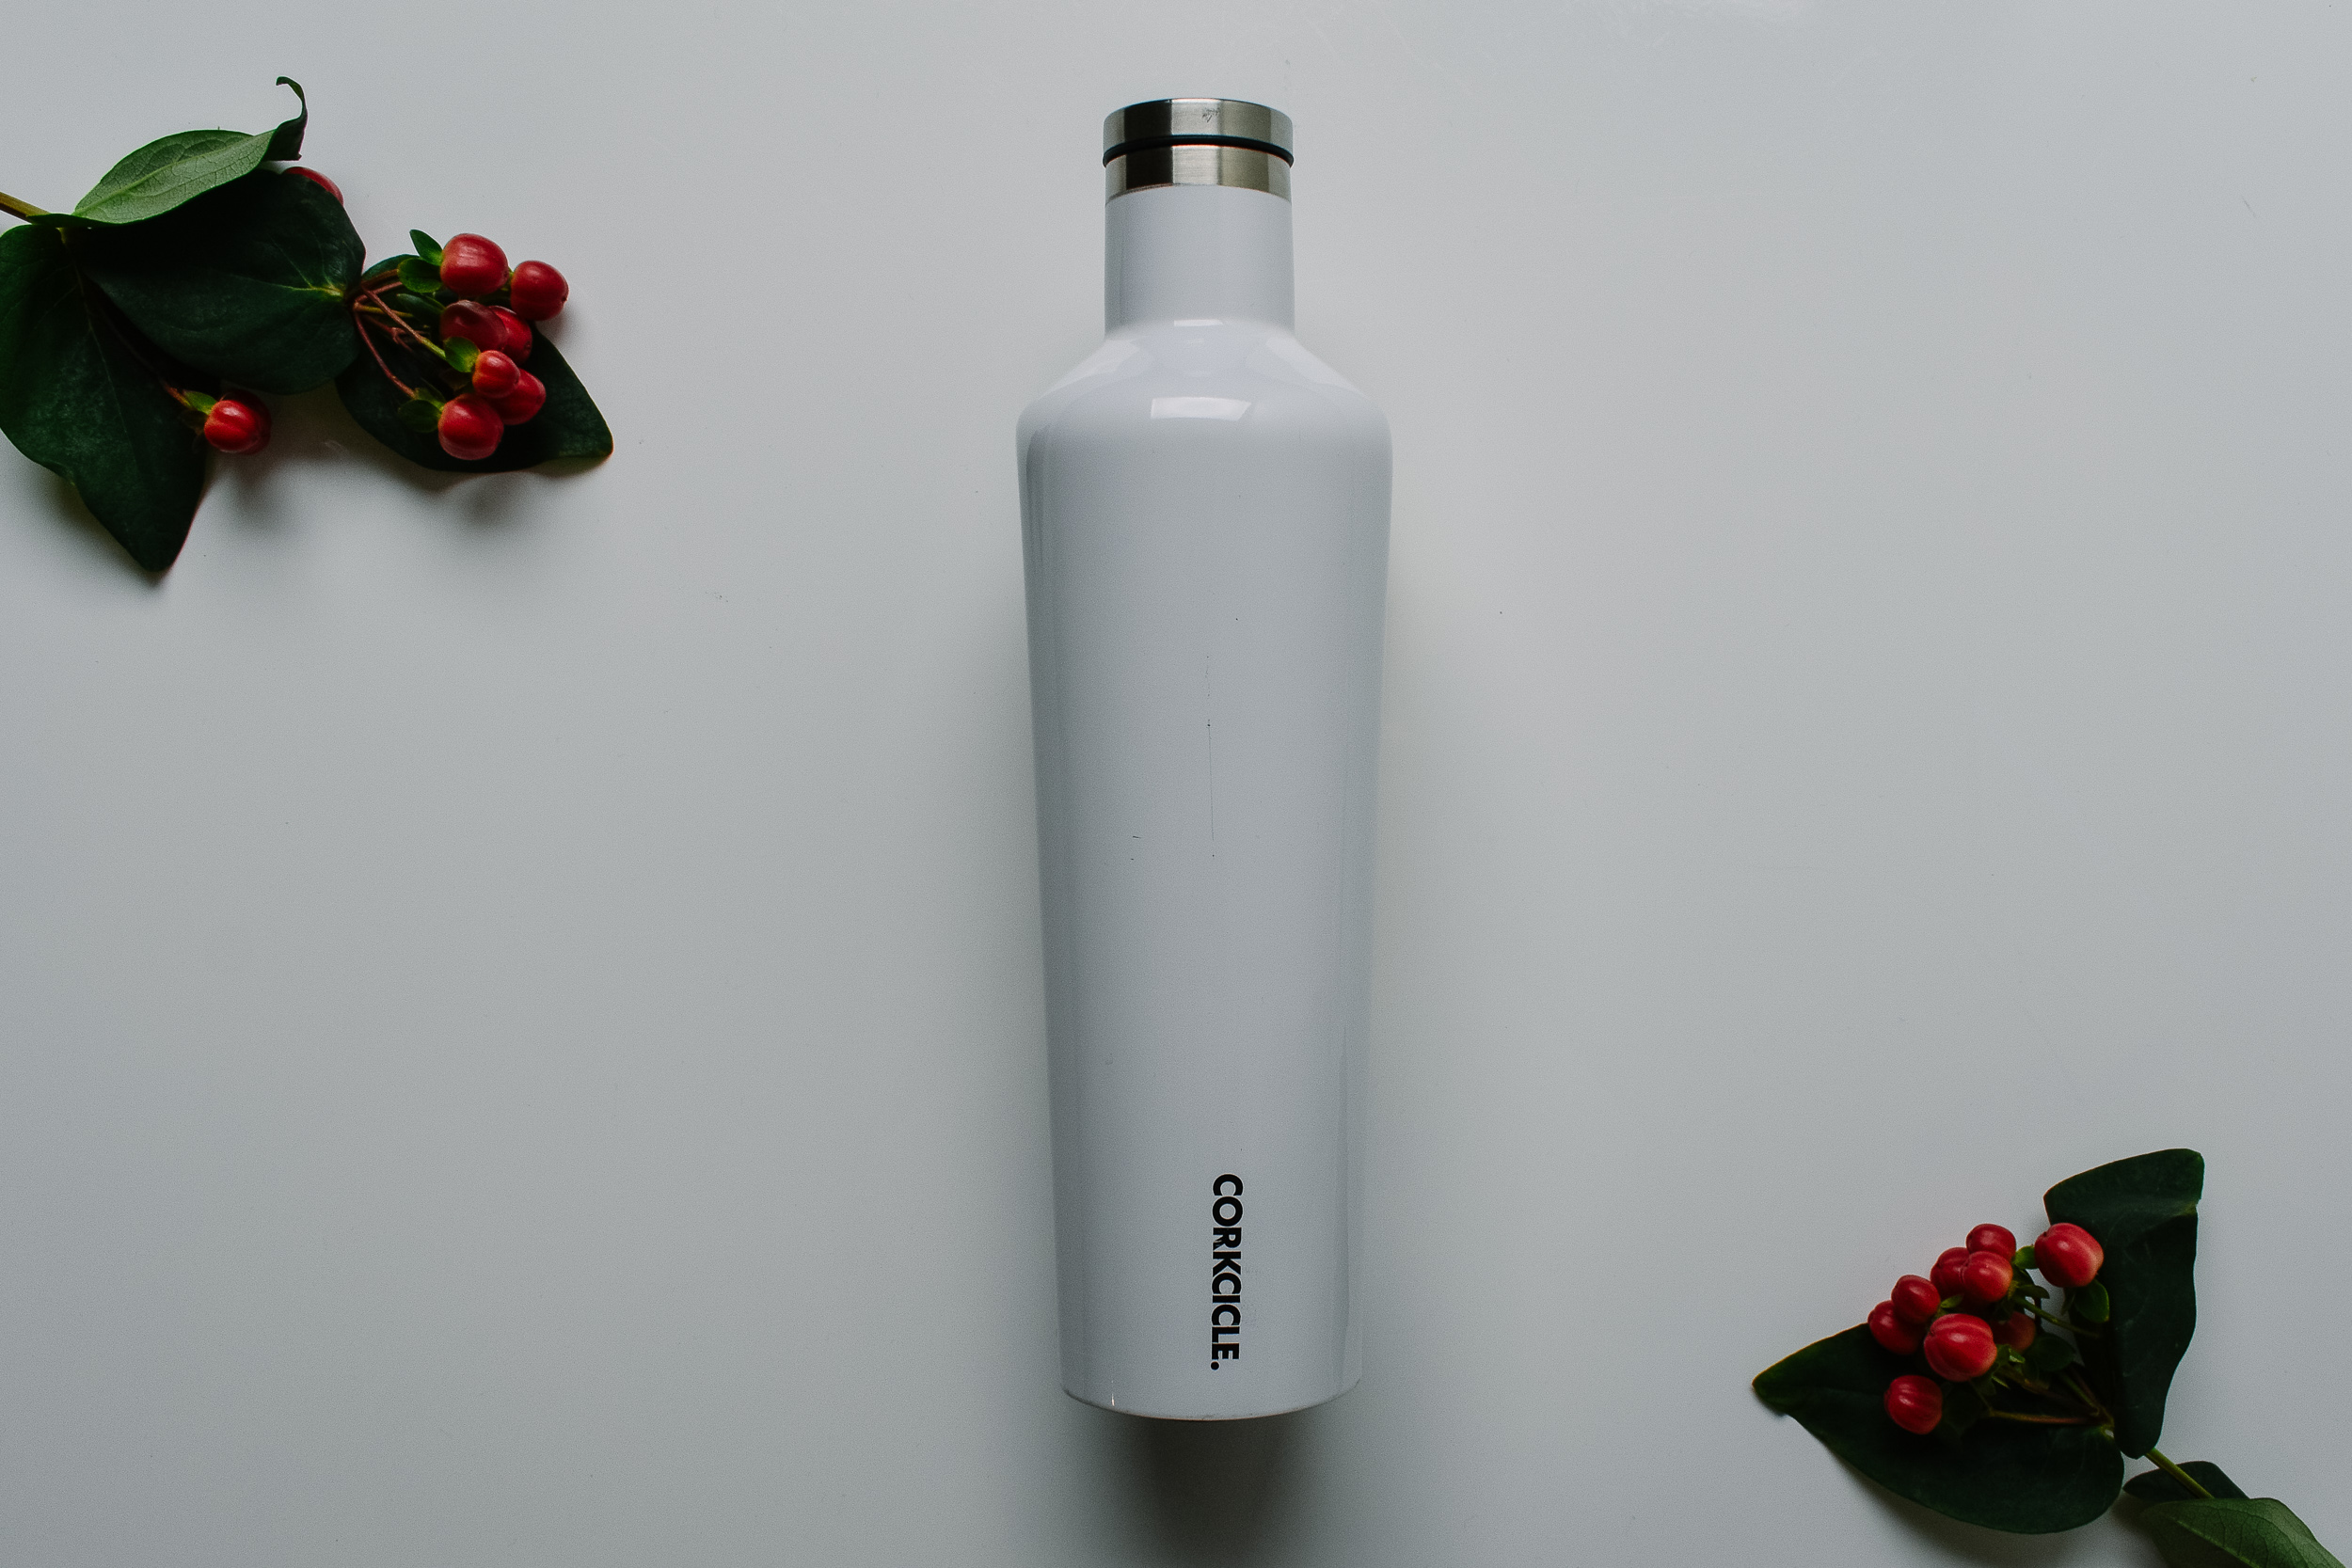 Corckcicle Thermos - The Corckcicle 25 oz. Canteen holds an entire bottle of wine! I've used to bring cold Rose and hot French Press coffee to the park (but not at the same time). It's perfect for day hikes and rooftop parties.